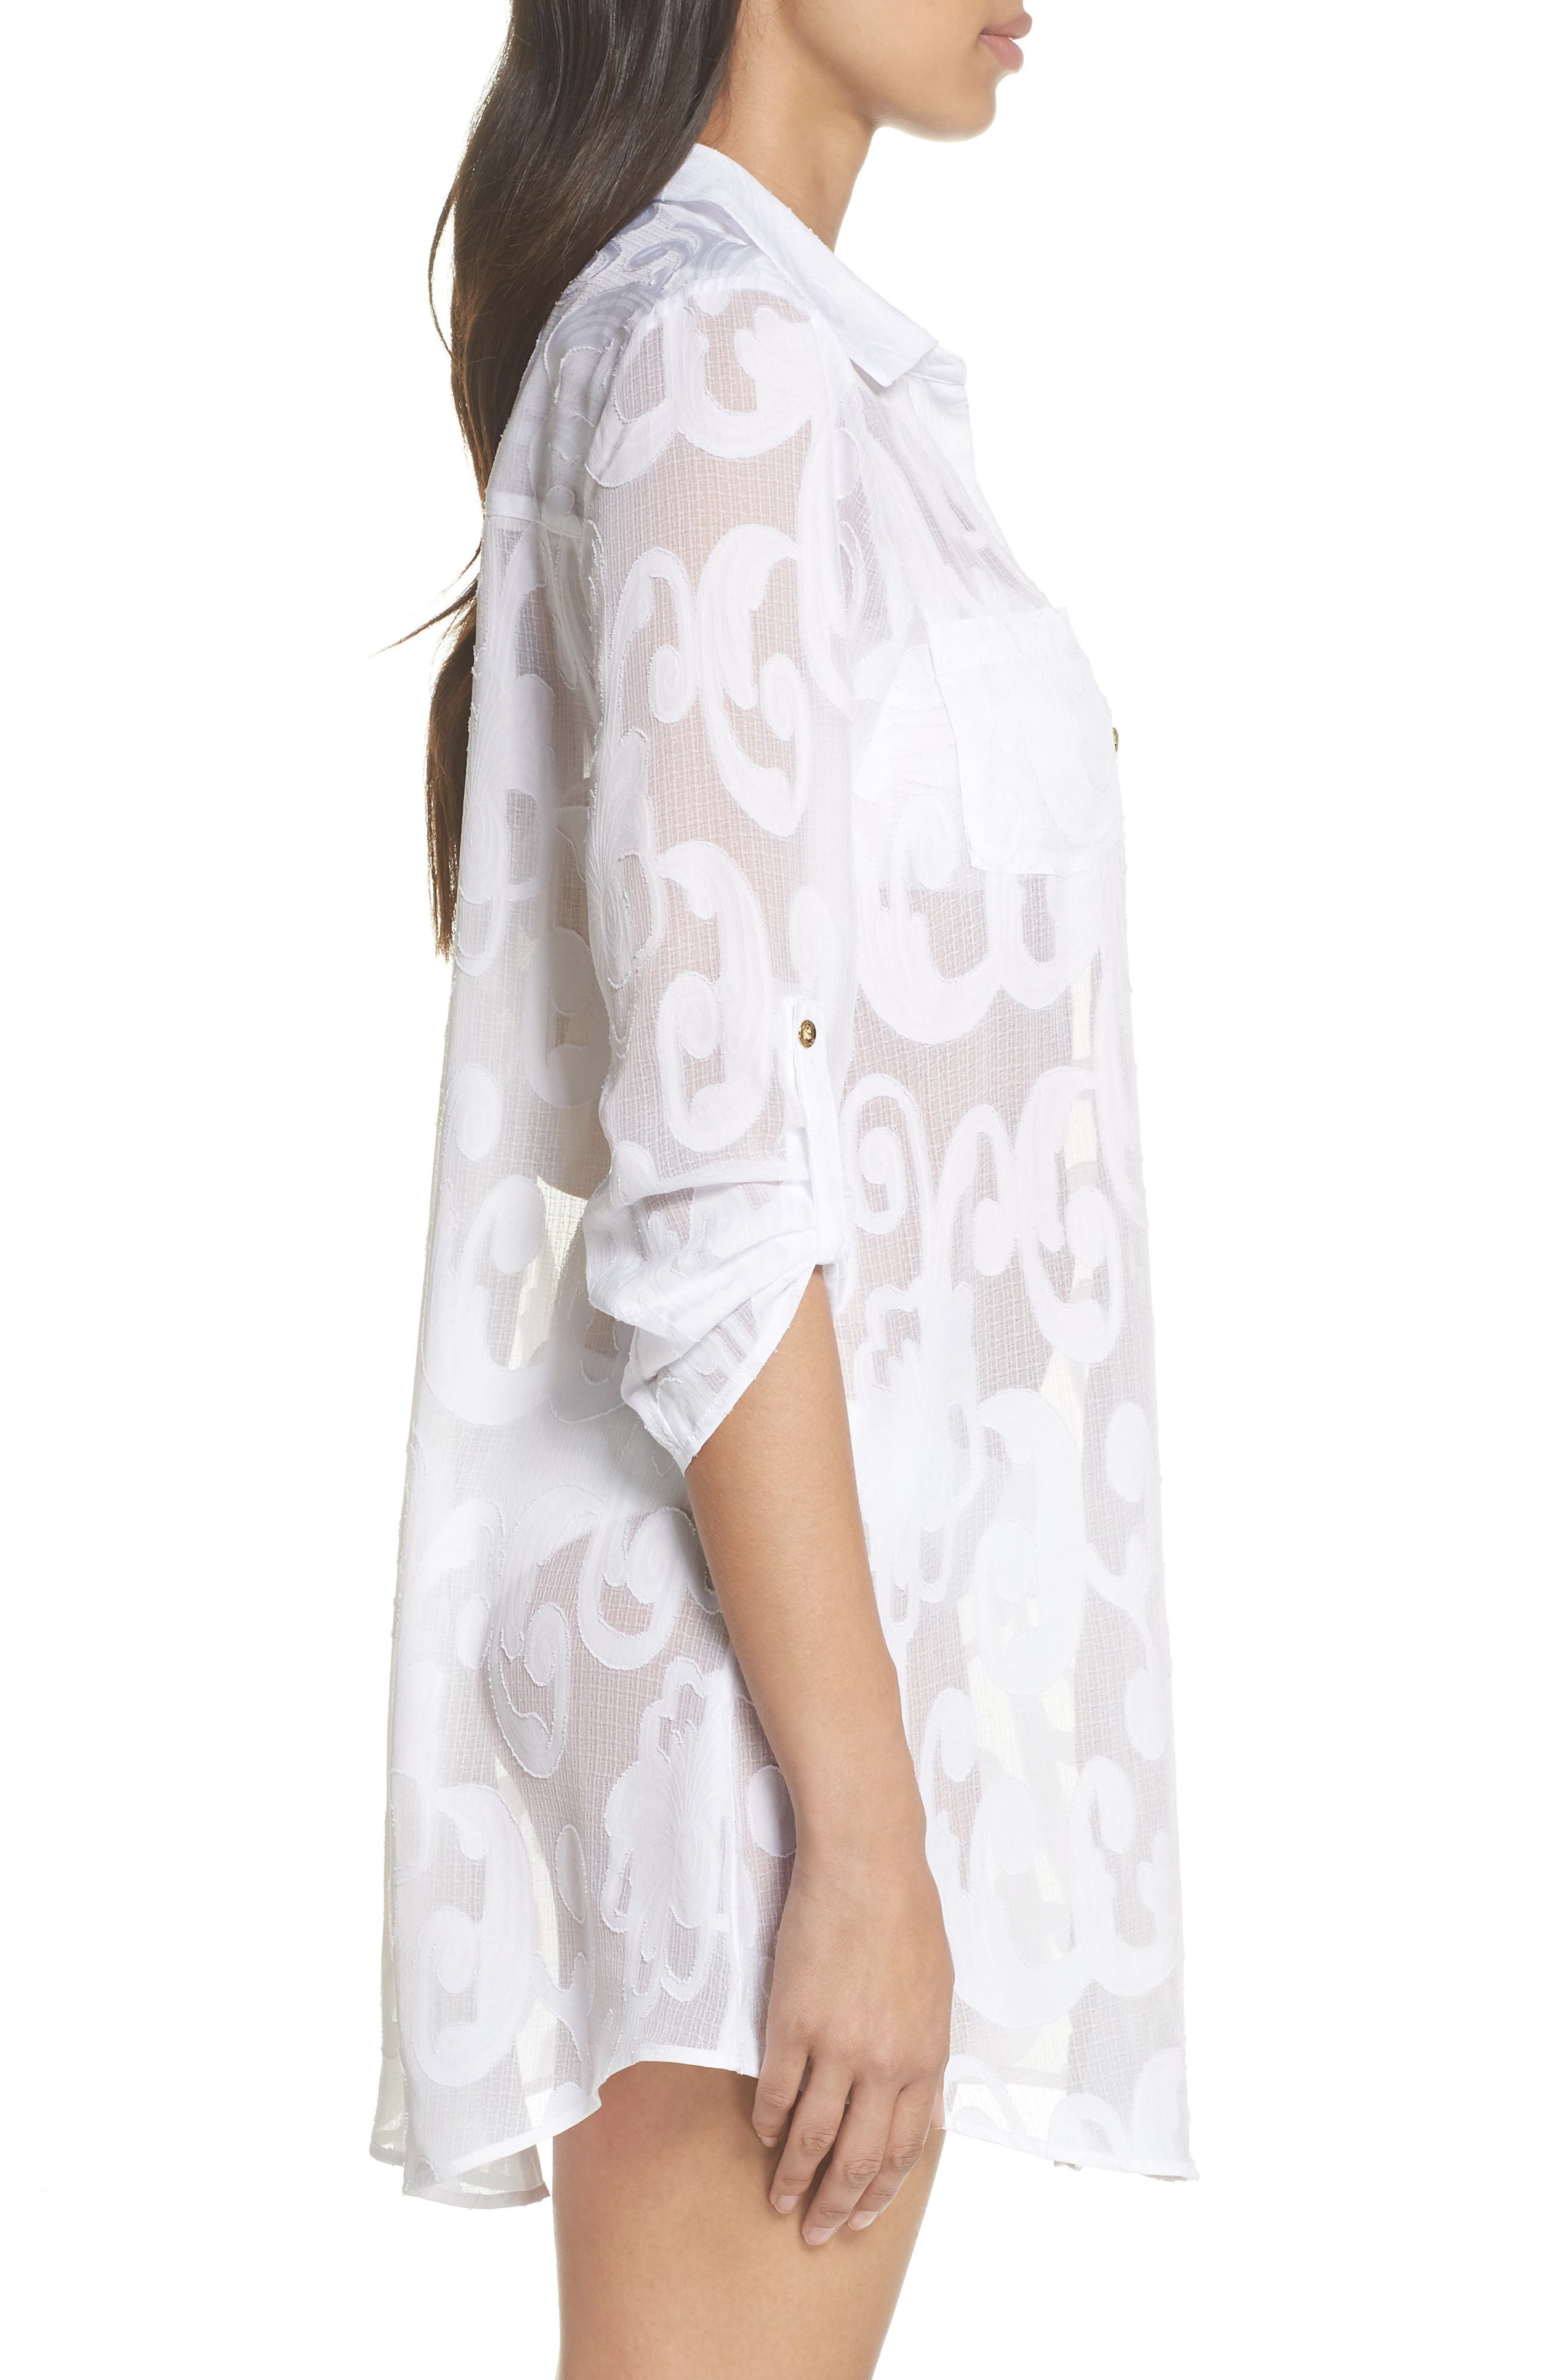 Natalie Shirtdress Cover-Up,                             Alternate thumbnail 3, color,                             Resort White Poly Crepe Swirl